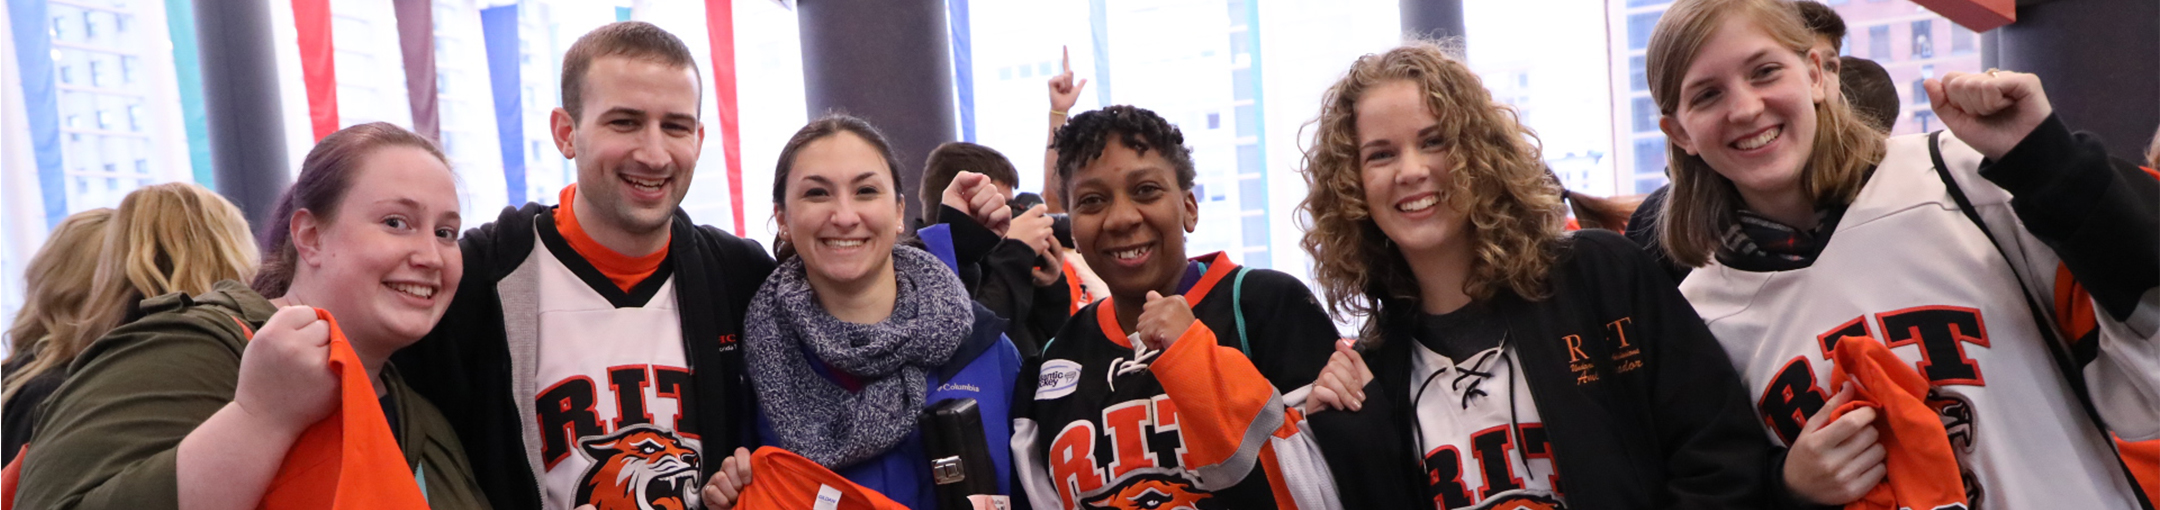 Students wearing RIT shirts and other gear